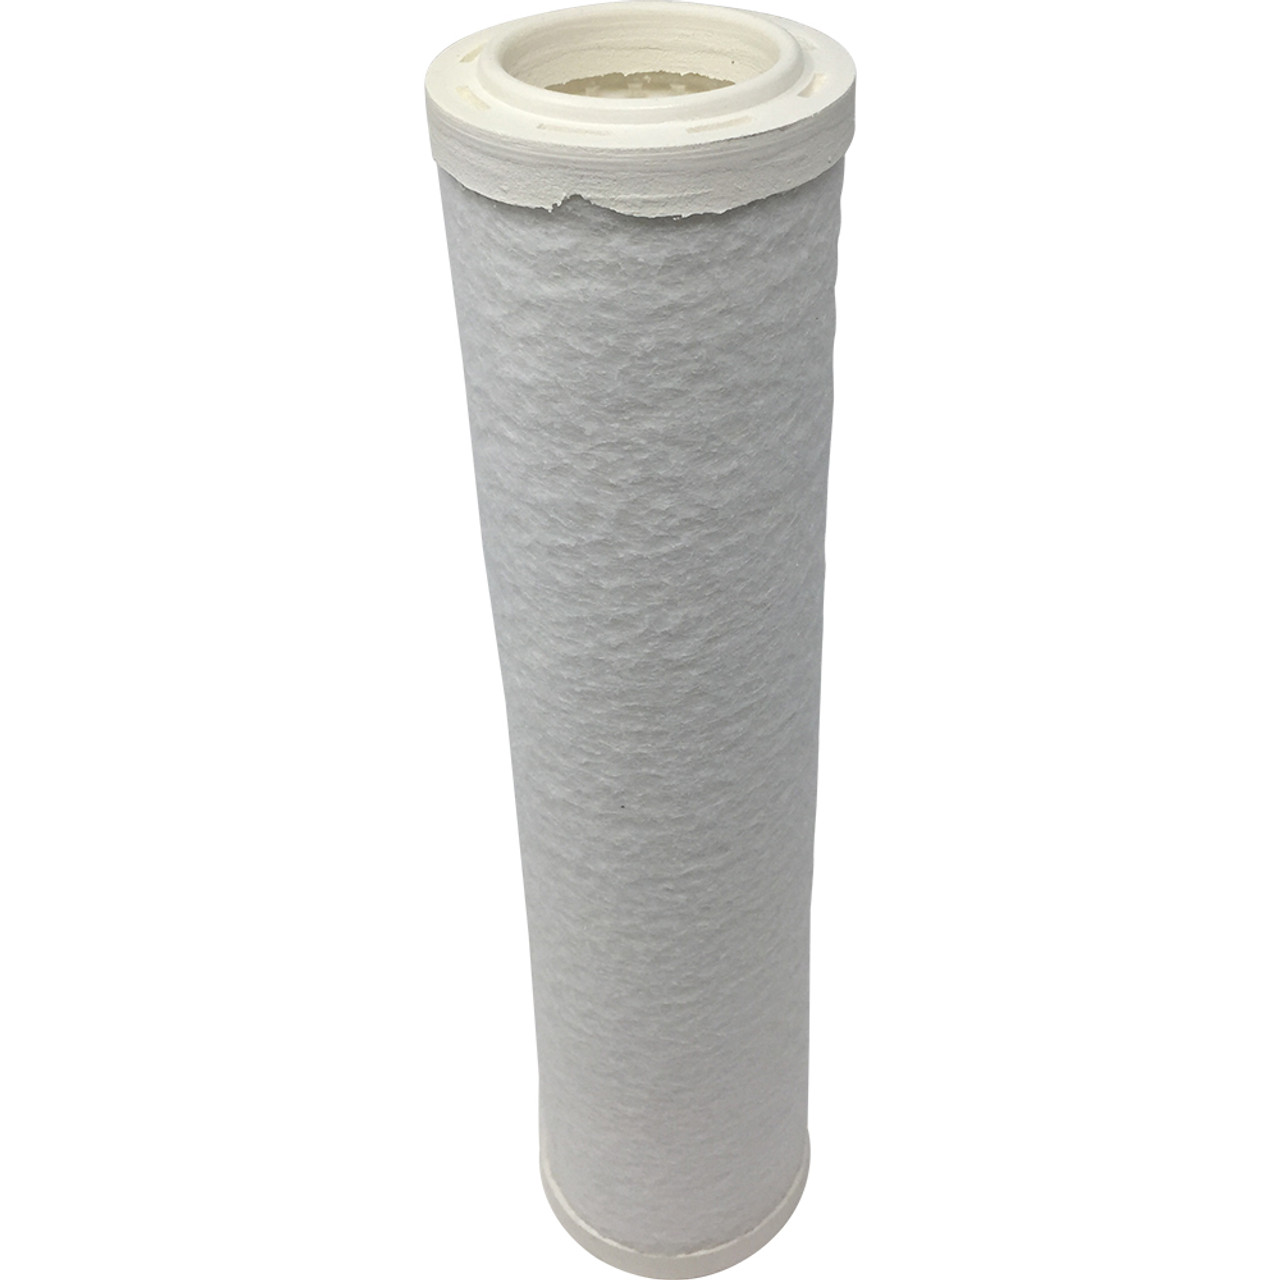 0.01 Micron Particulate//0.01 PPM Oil Removal Efficiency EGC-80//100-S Replacement Filter Element for Great Lakes GC-80-S